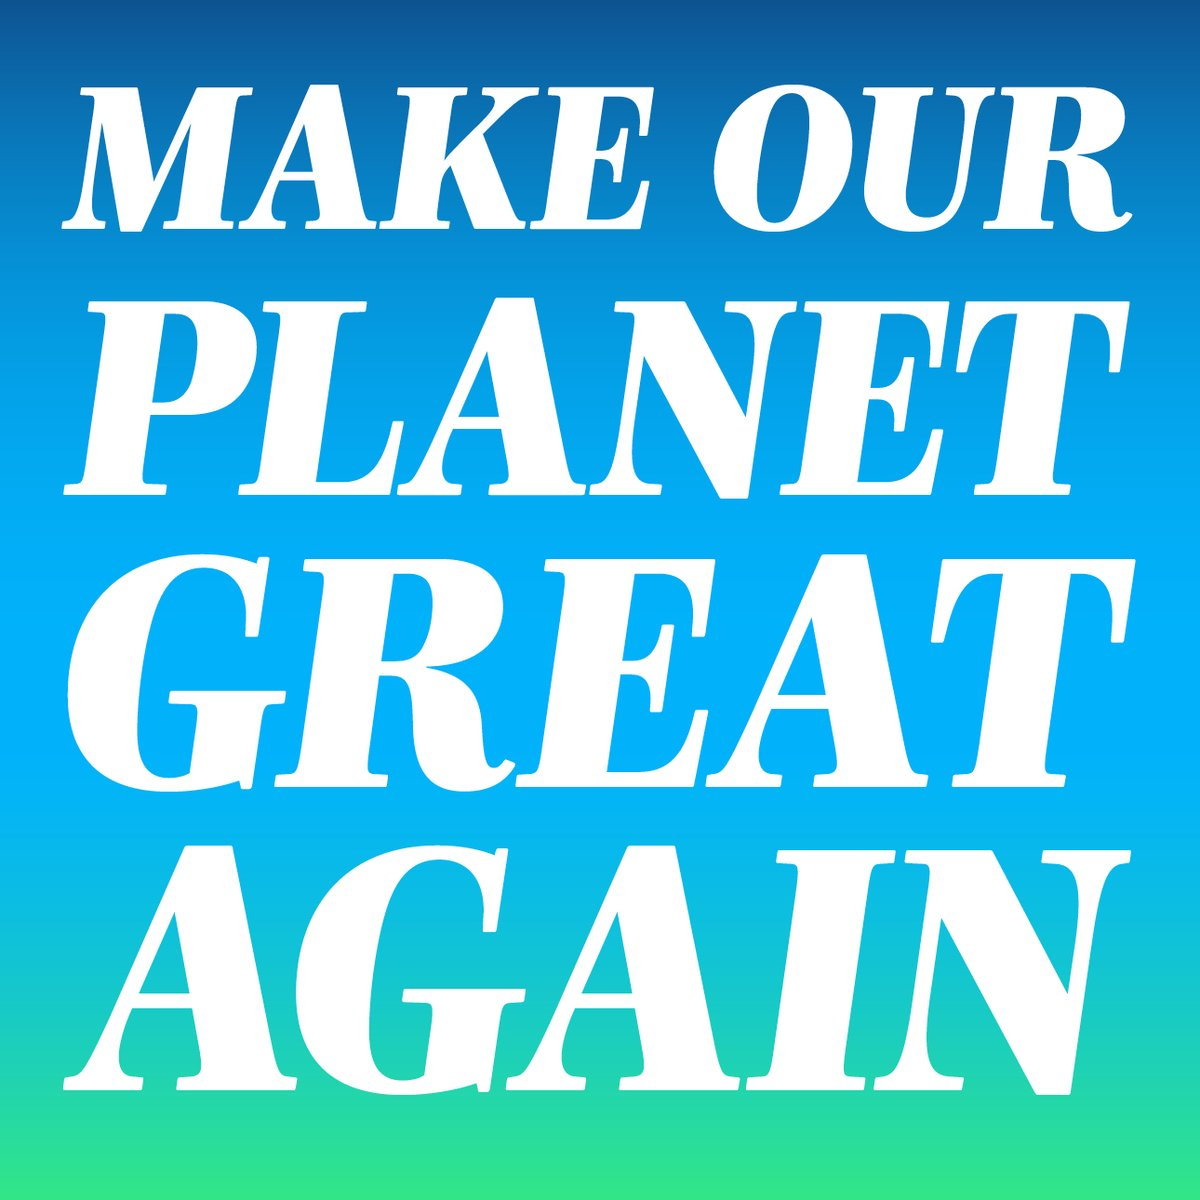 « Make Our Planet Great Again »